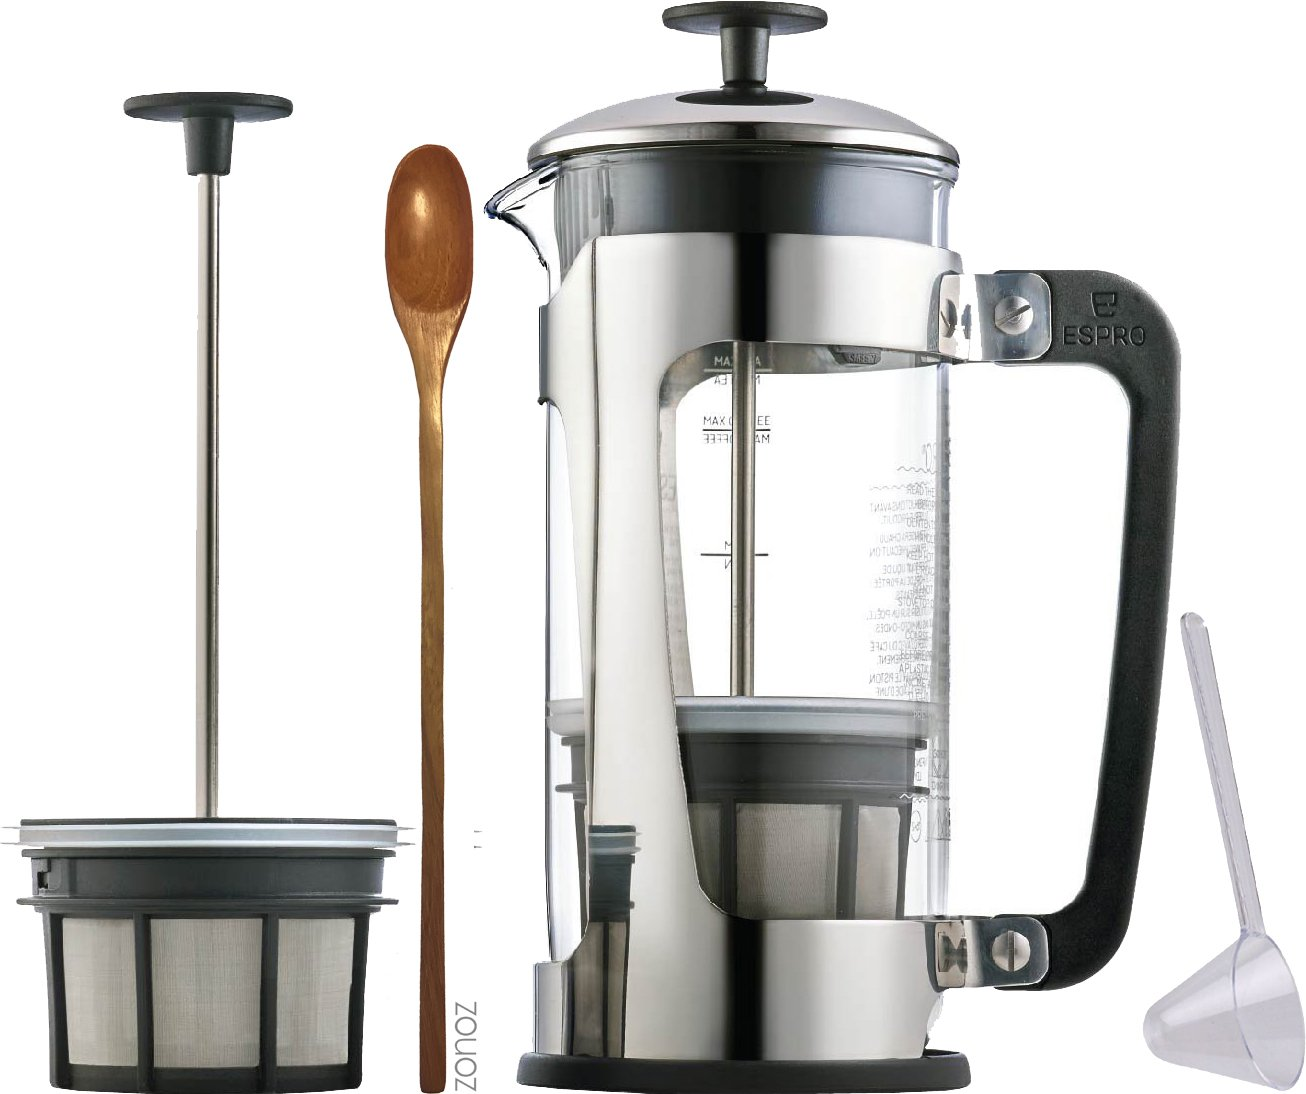 Espro Coffee Press P5-18 oz, Glass Carafe and Stainless Steel Cage, Zonoz Wooden Stirring Spoon & Zonoz One-Tablespoon Plastic Clever Scoop (Bundle)